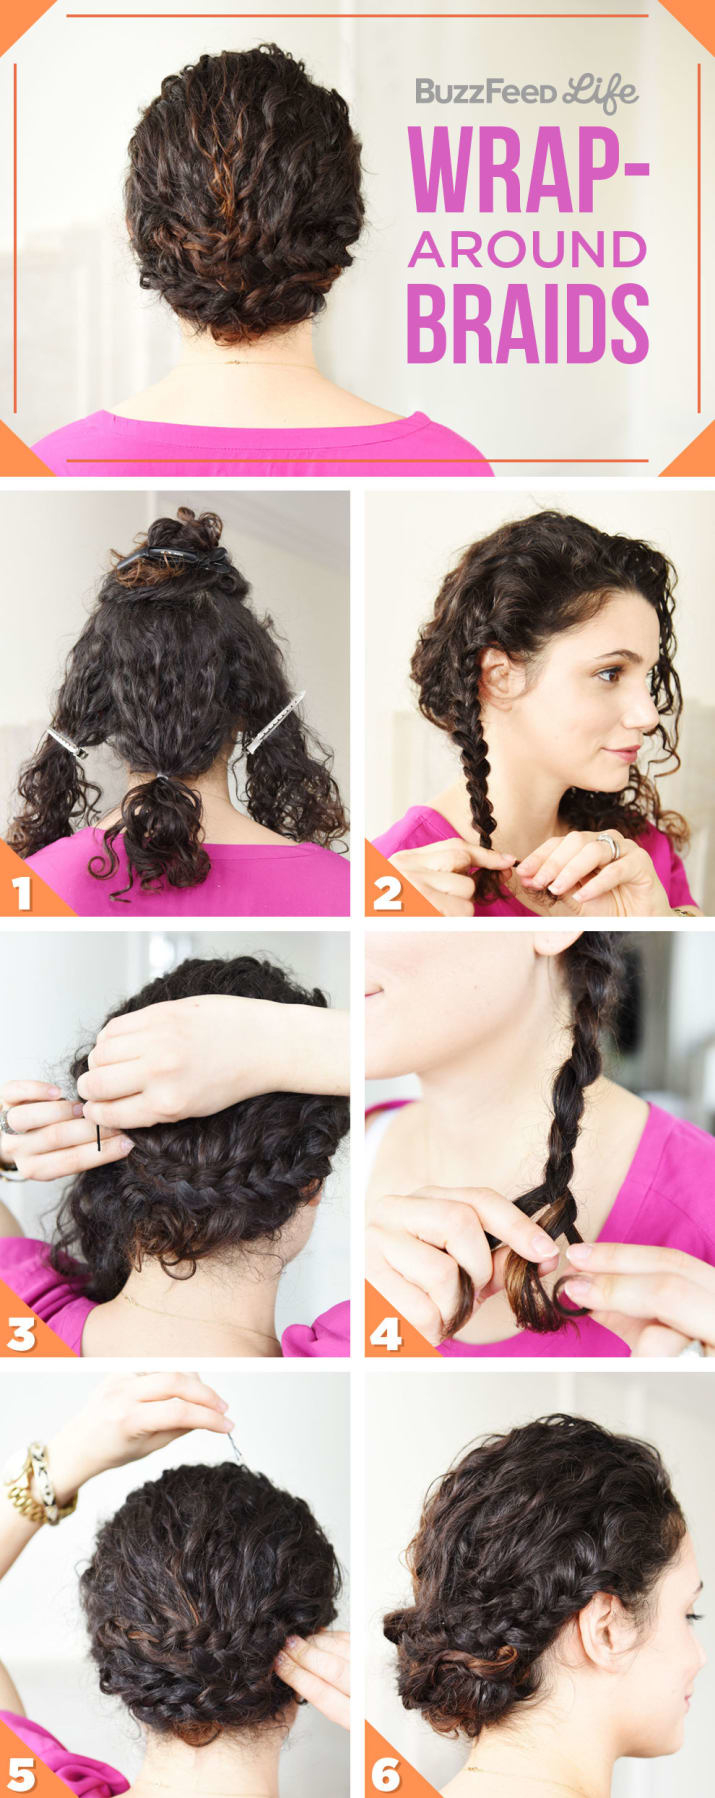 hairdos for curly hair 8 - Hairdos for Curly Hair